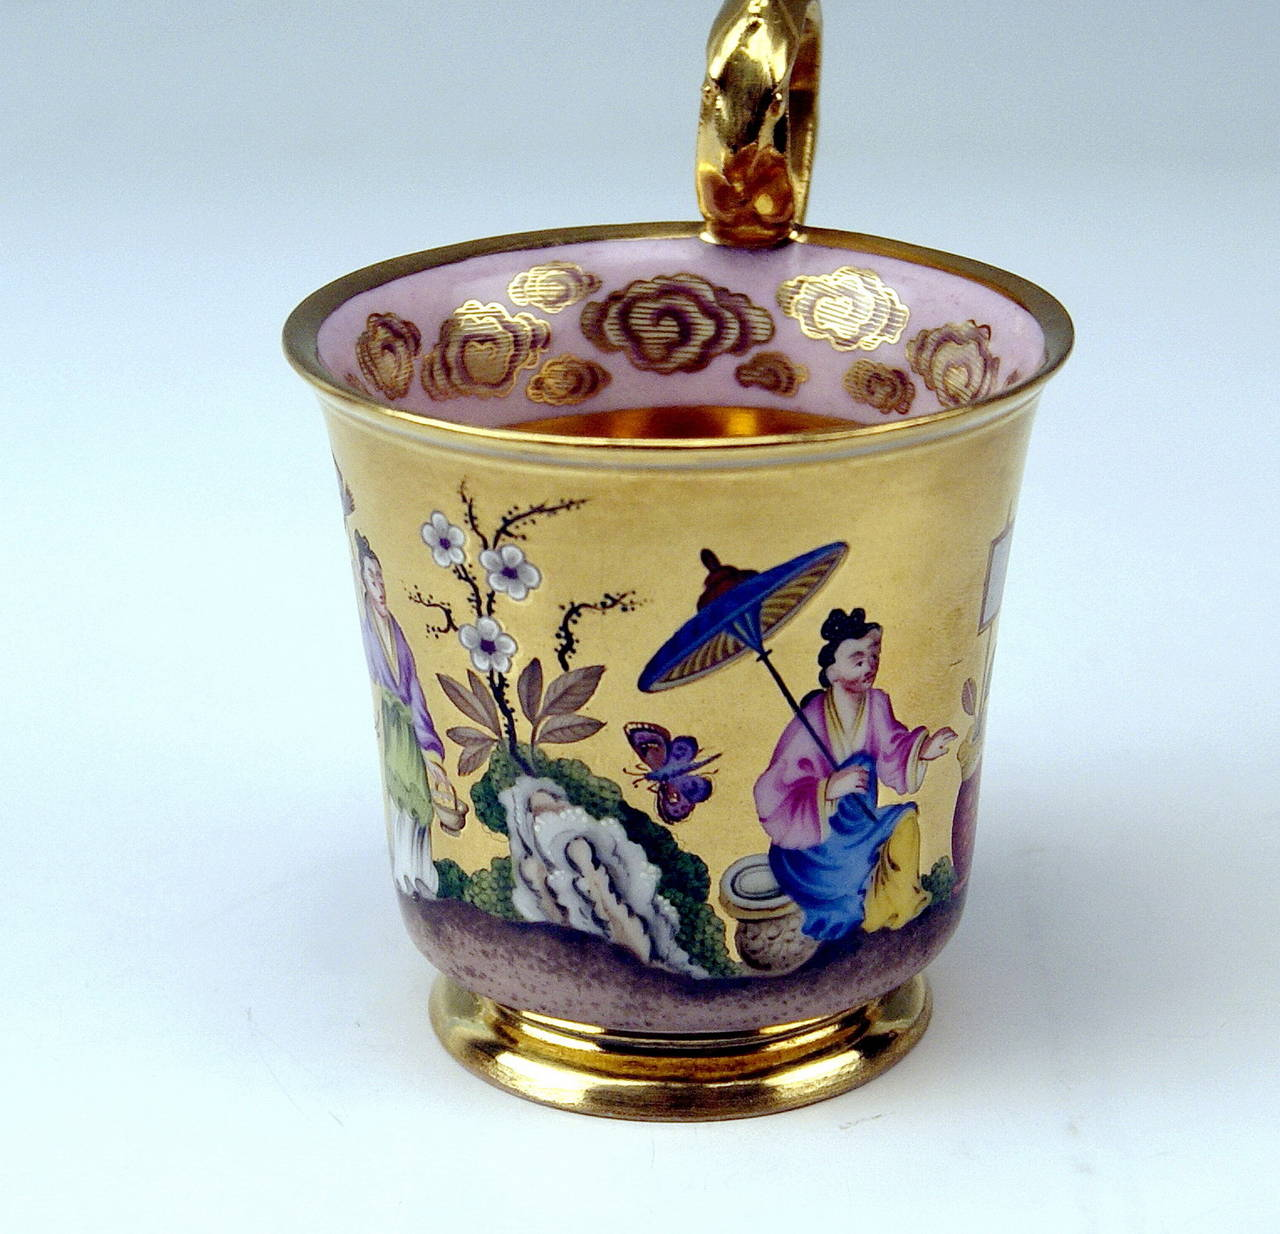 Austrian Vienna Imperial Porcelain Cup Saucer Chinese Style Paintings Dated 1817 Austria For Sale